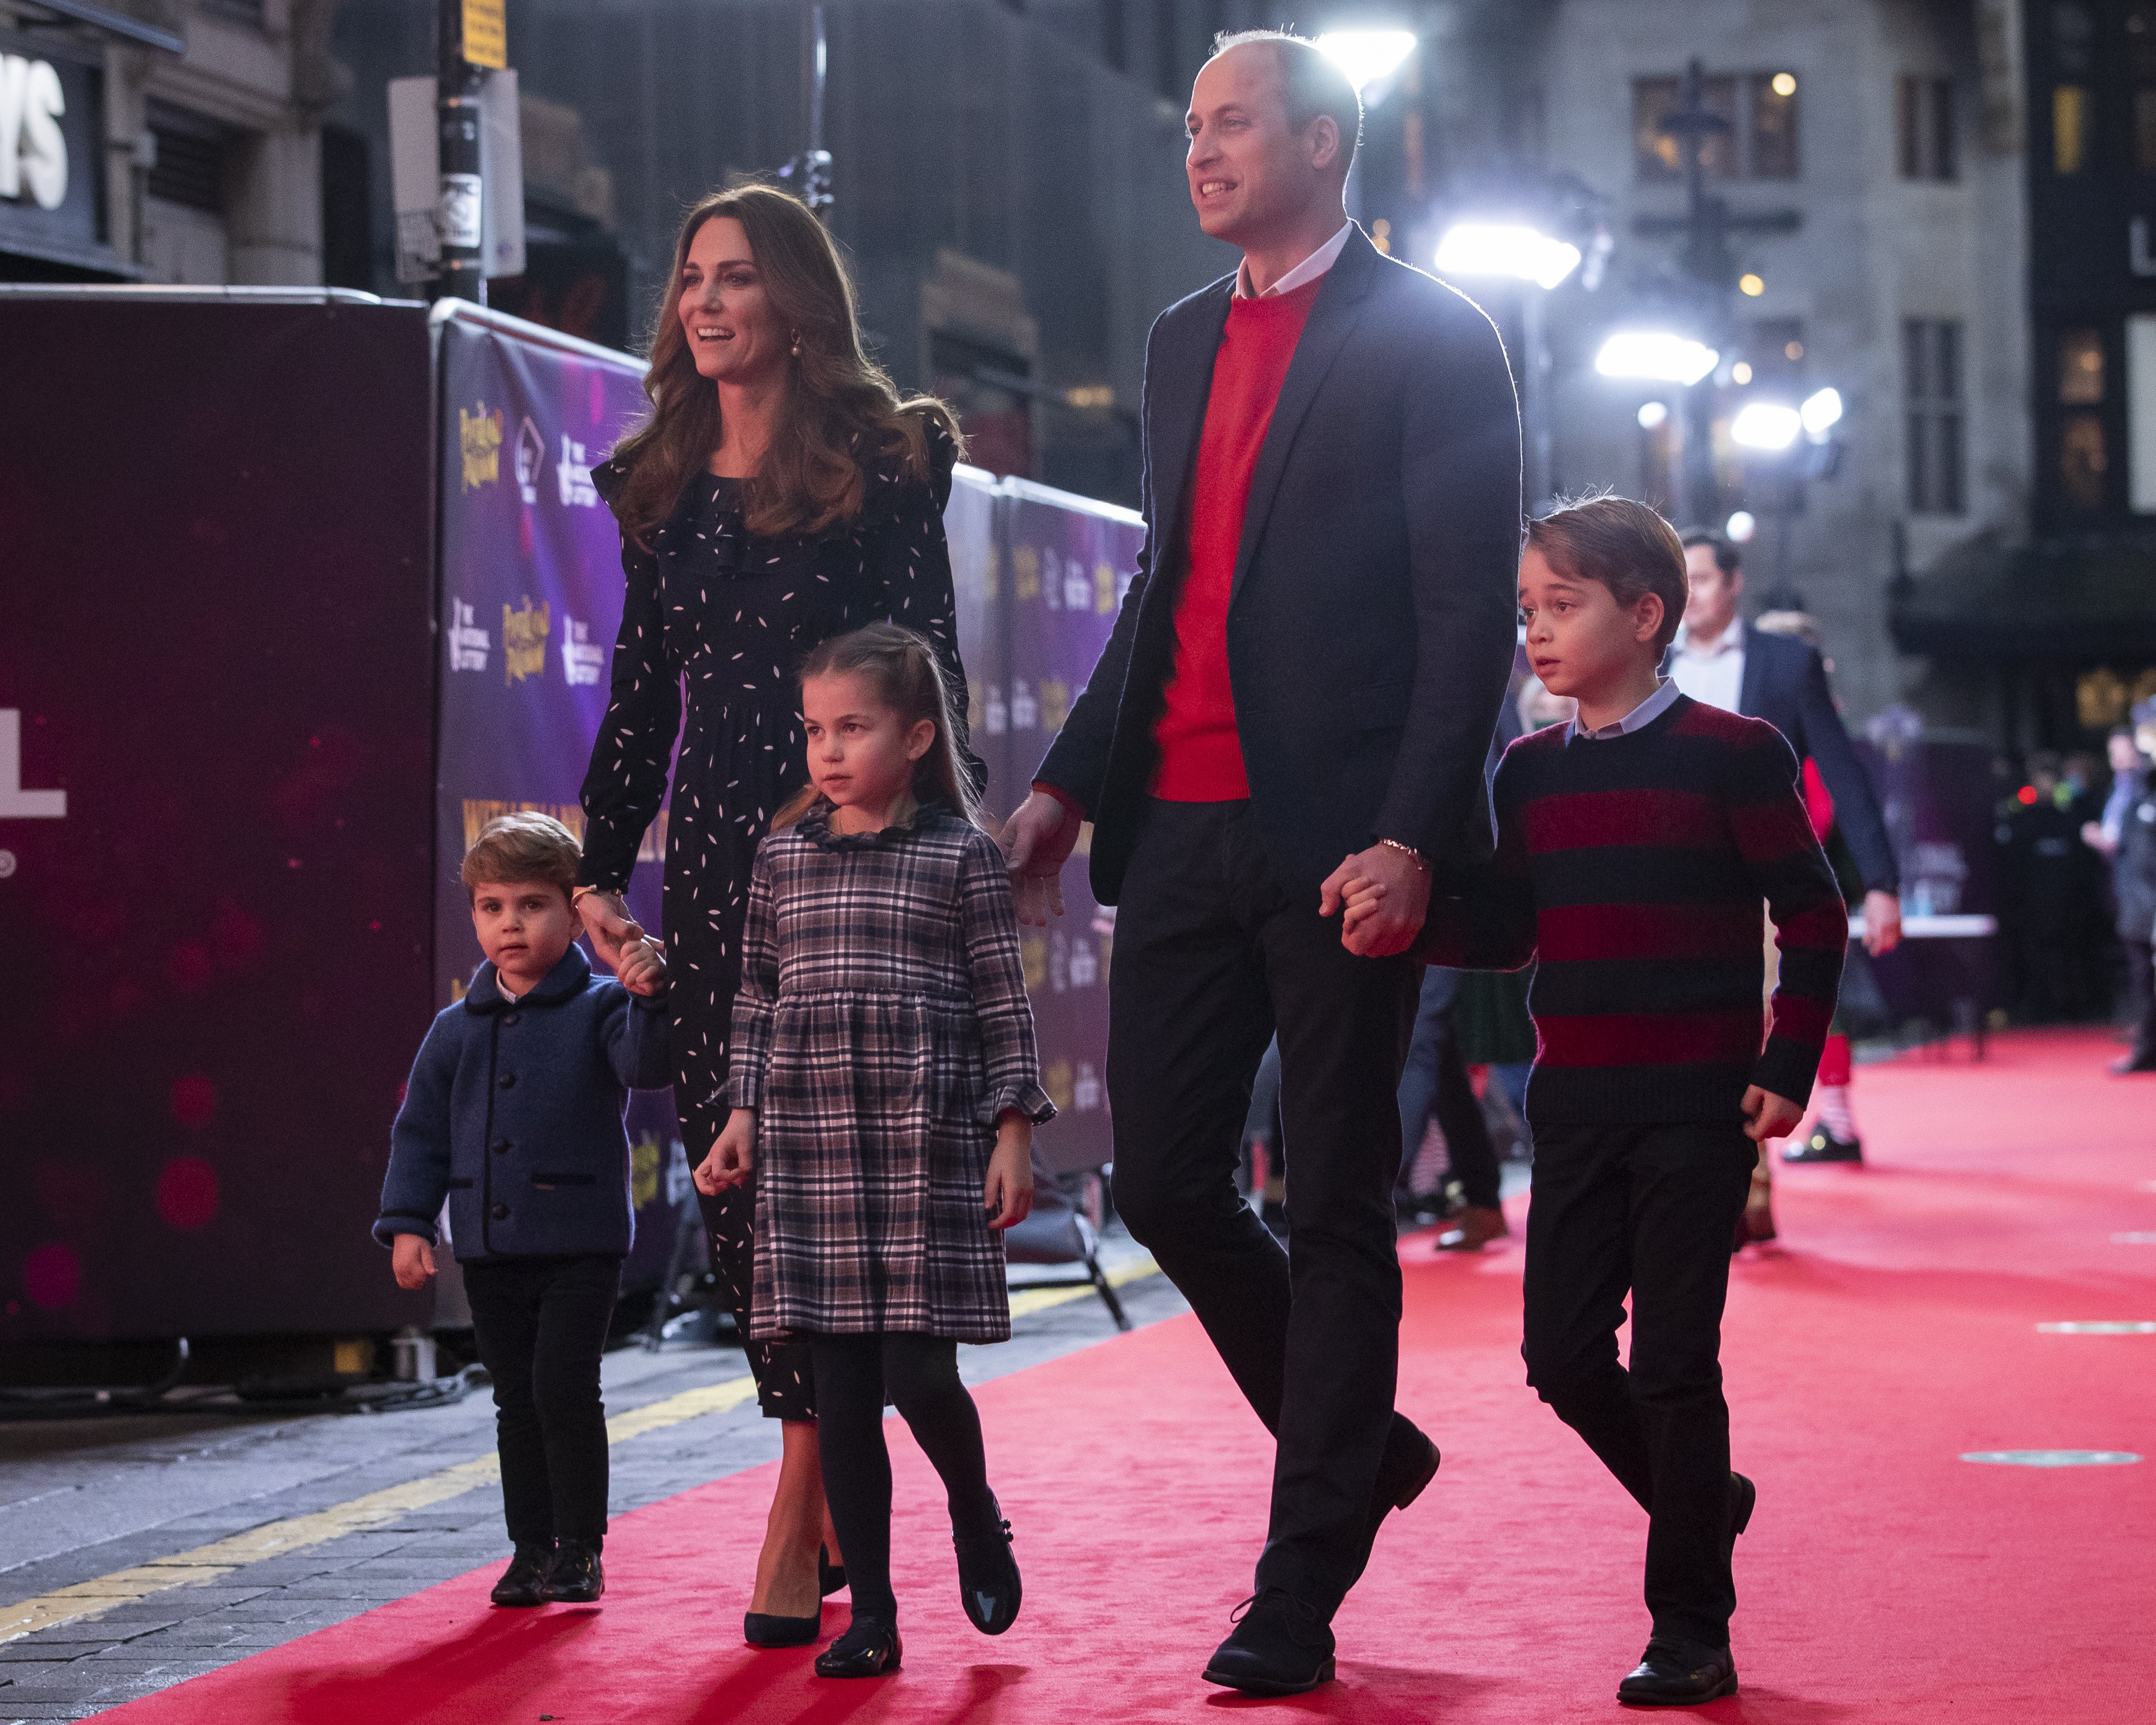 Prince William and Kate Middleton with their children, Prince Louis, Princess Charlotte and Prince George, at London's Palladium Theatre, on December 11, 2020 in London, England | Photo: Getty Images